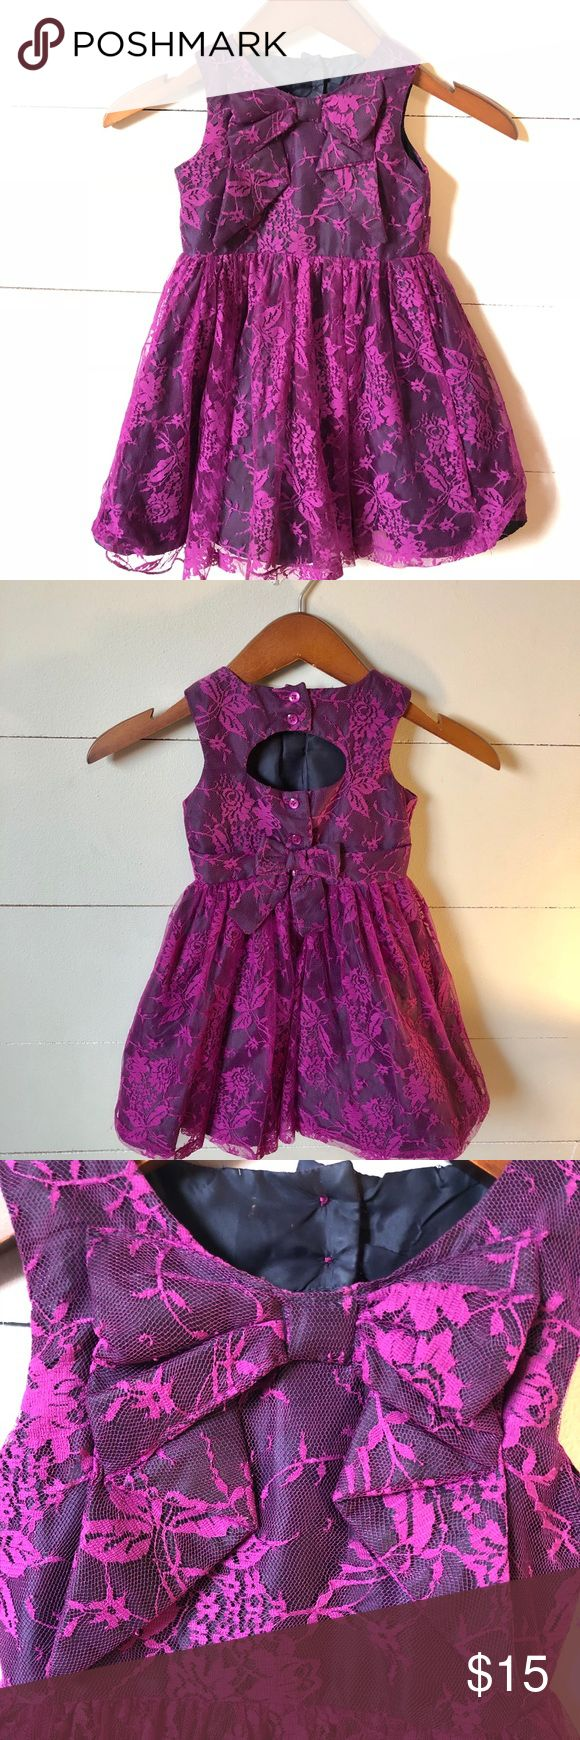 Little girls purple and navy lace bow dress. Little girls purple lace dress with navy lining. Dress also has some tulle underneath to make the skirt fuller. Beautiful special occasion dress. Size 4T. Worn for a wedding. 🎀 Dresses Formal